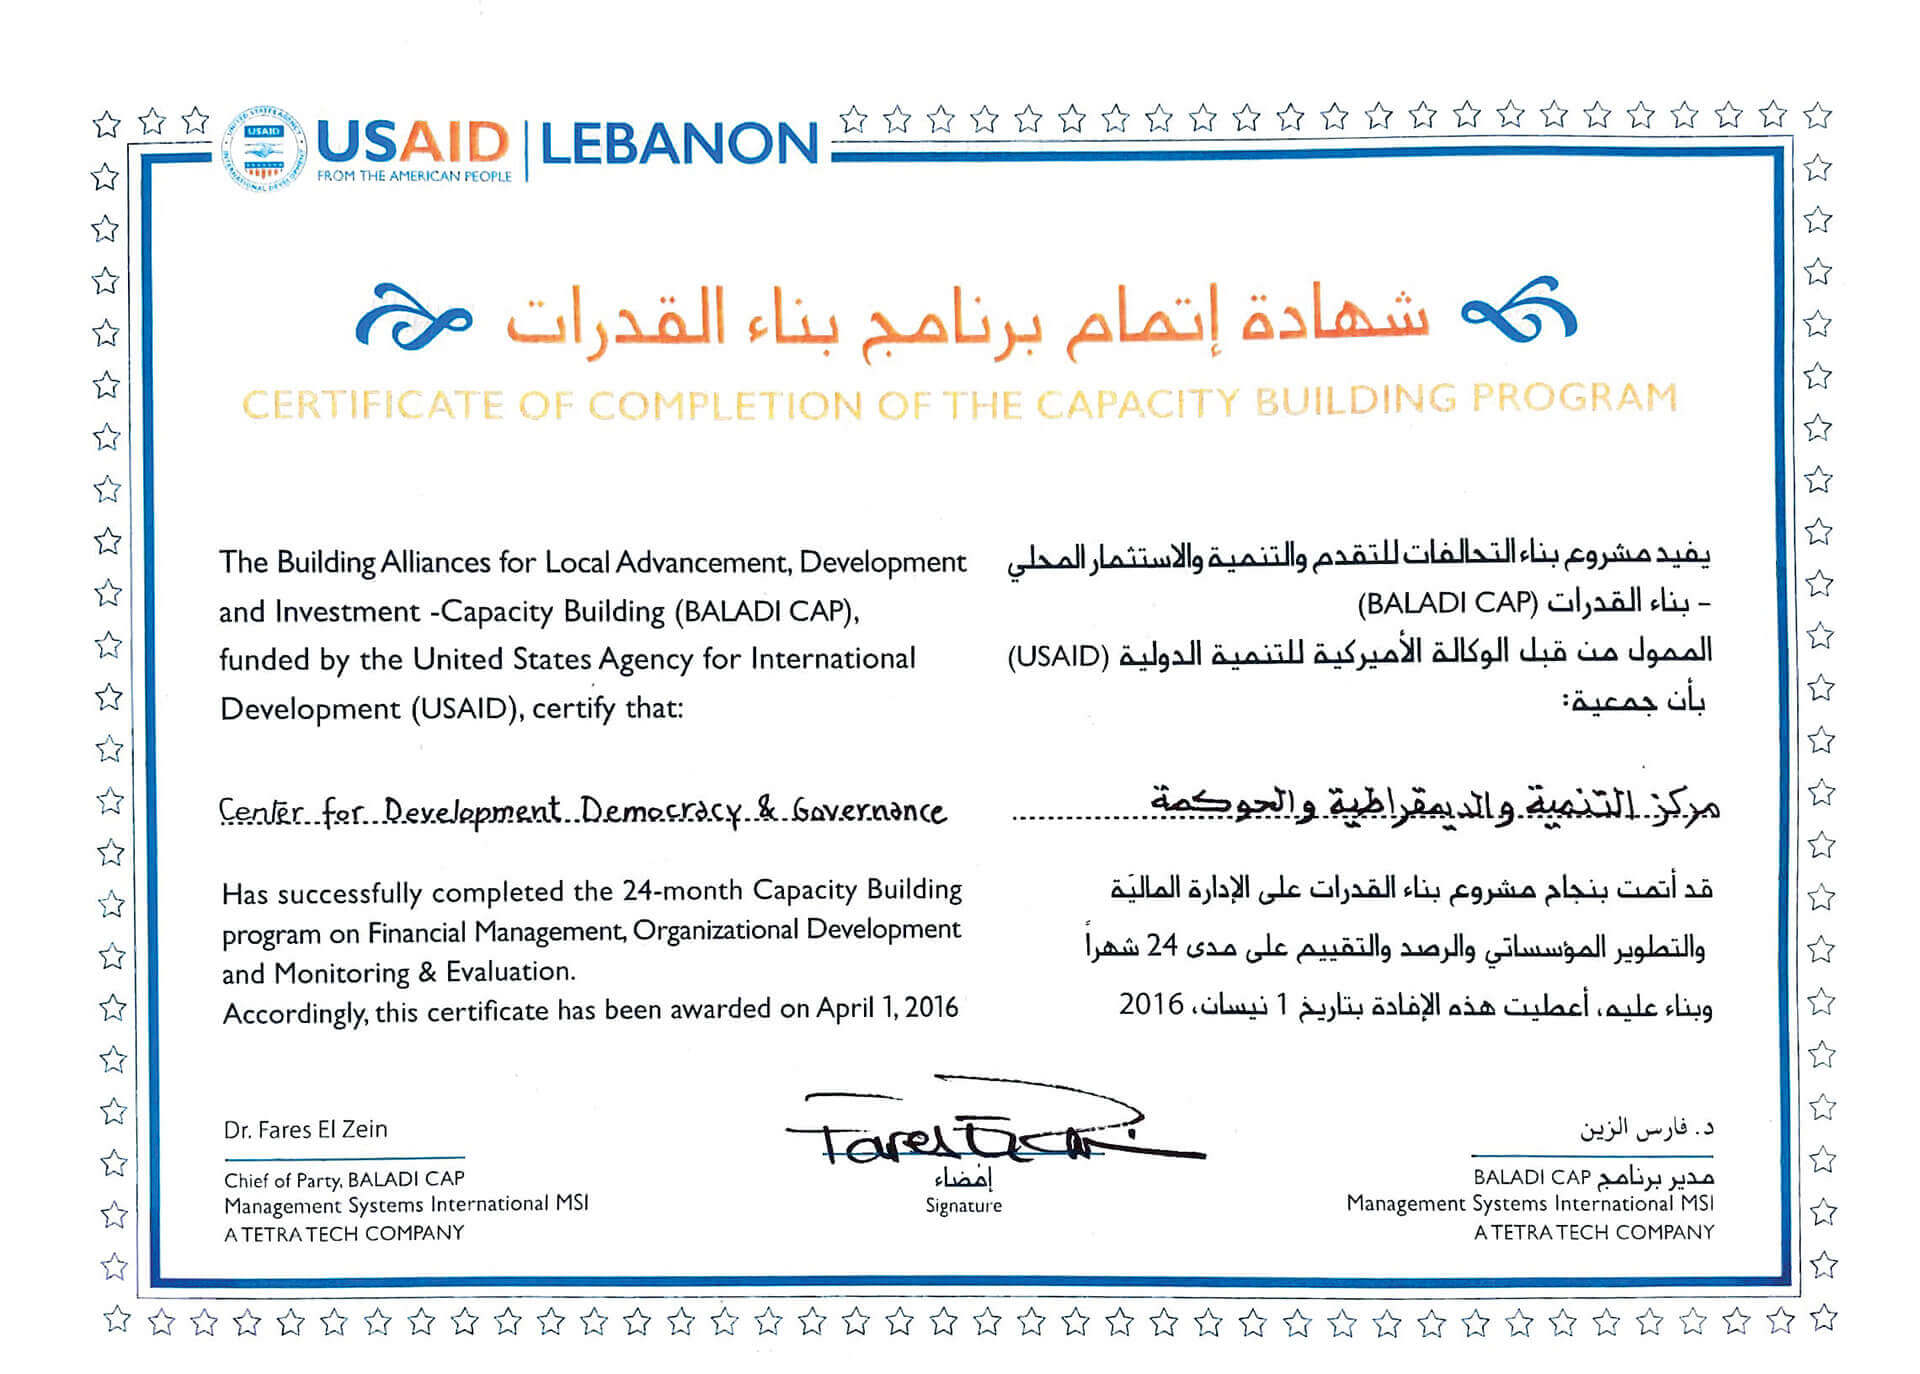 CDDG Certificate of Completion of the Capacity Building Program